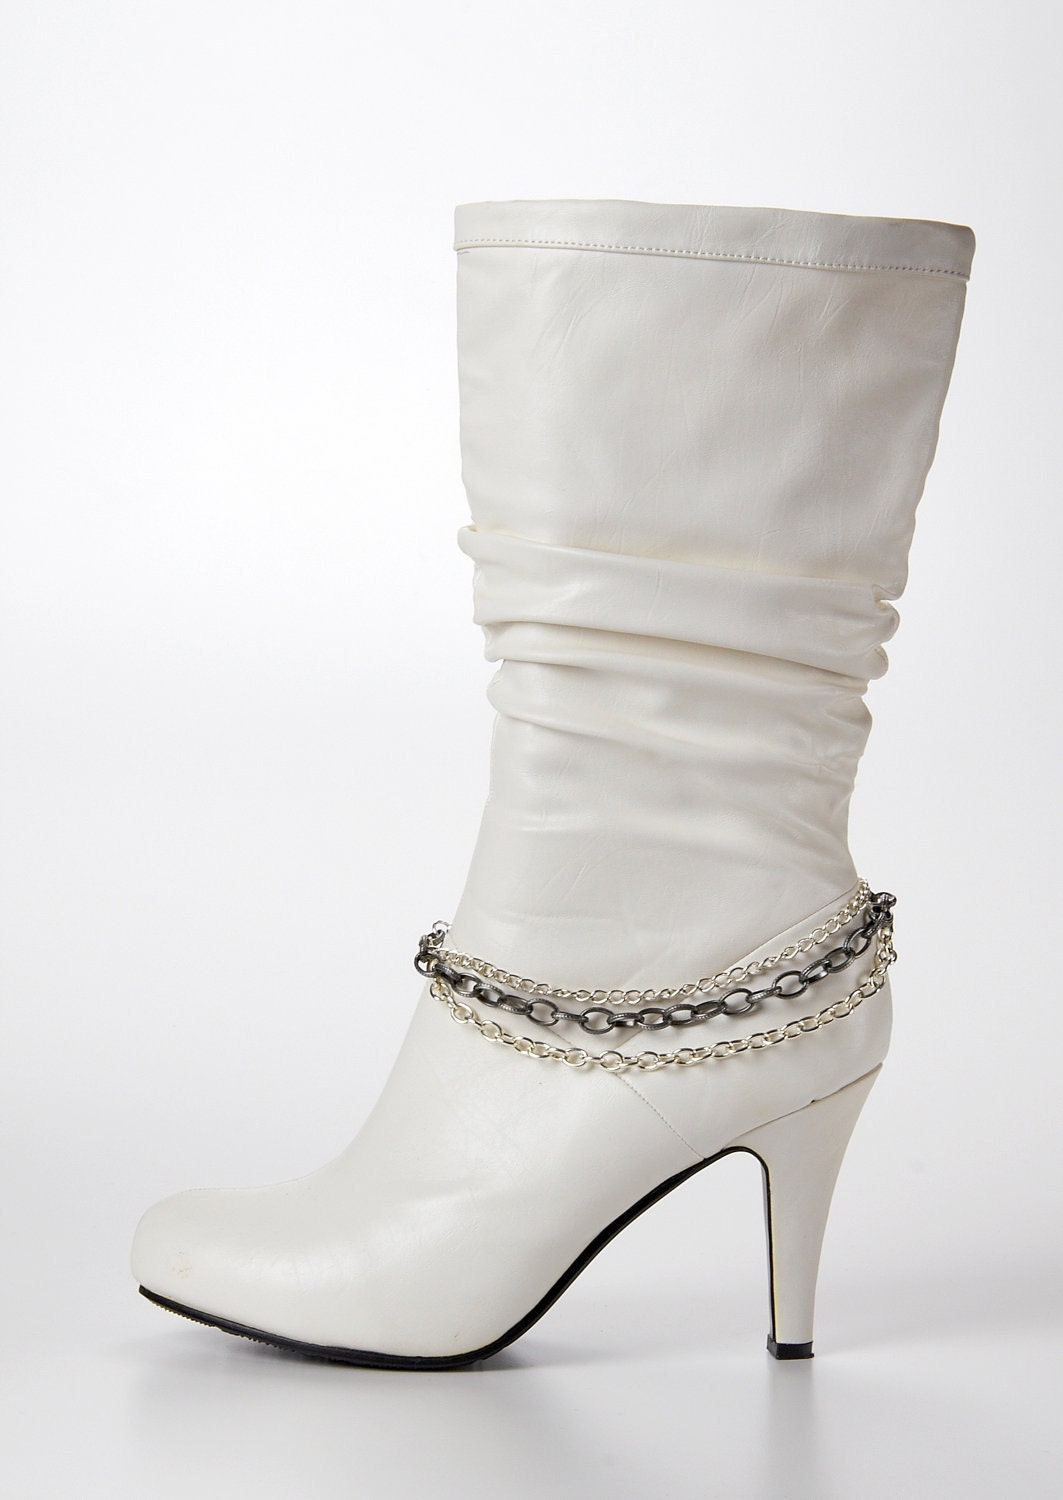 Boot Bracelets on Silver Boot Bling   Jewelry Accent To Your Boots   Boot Jewelry